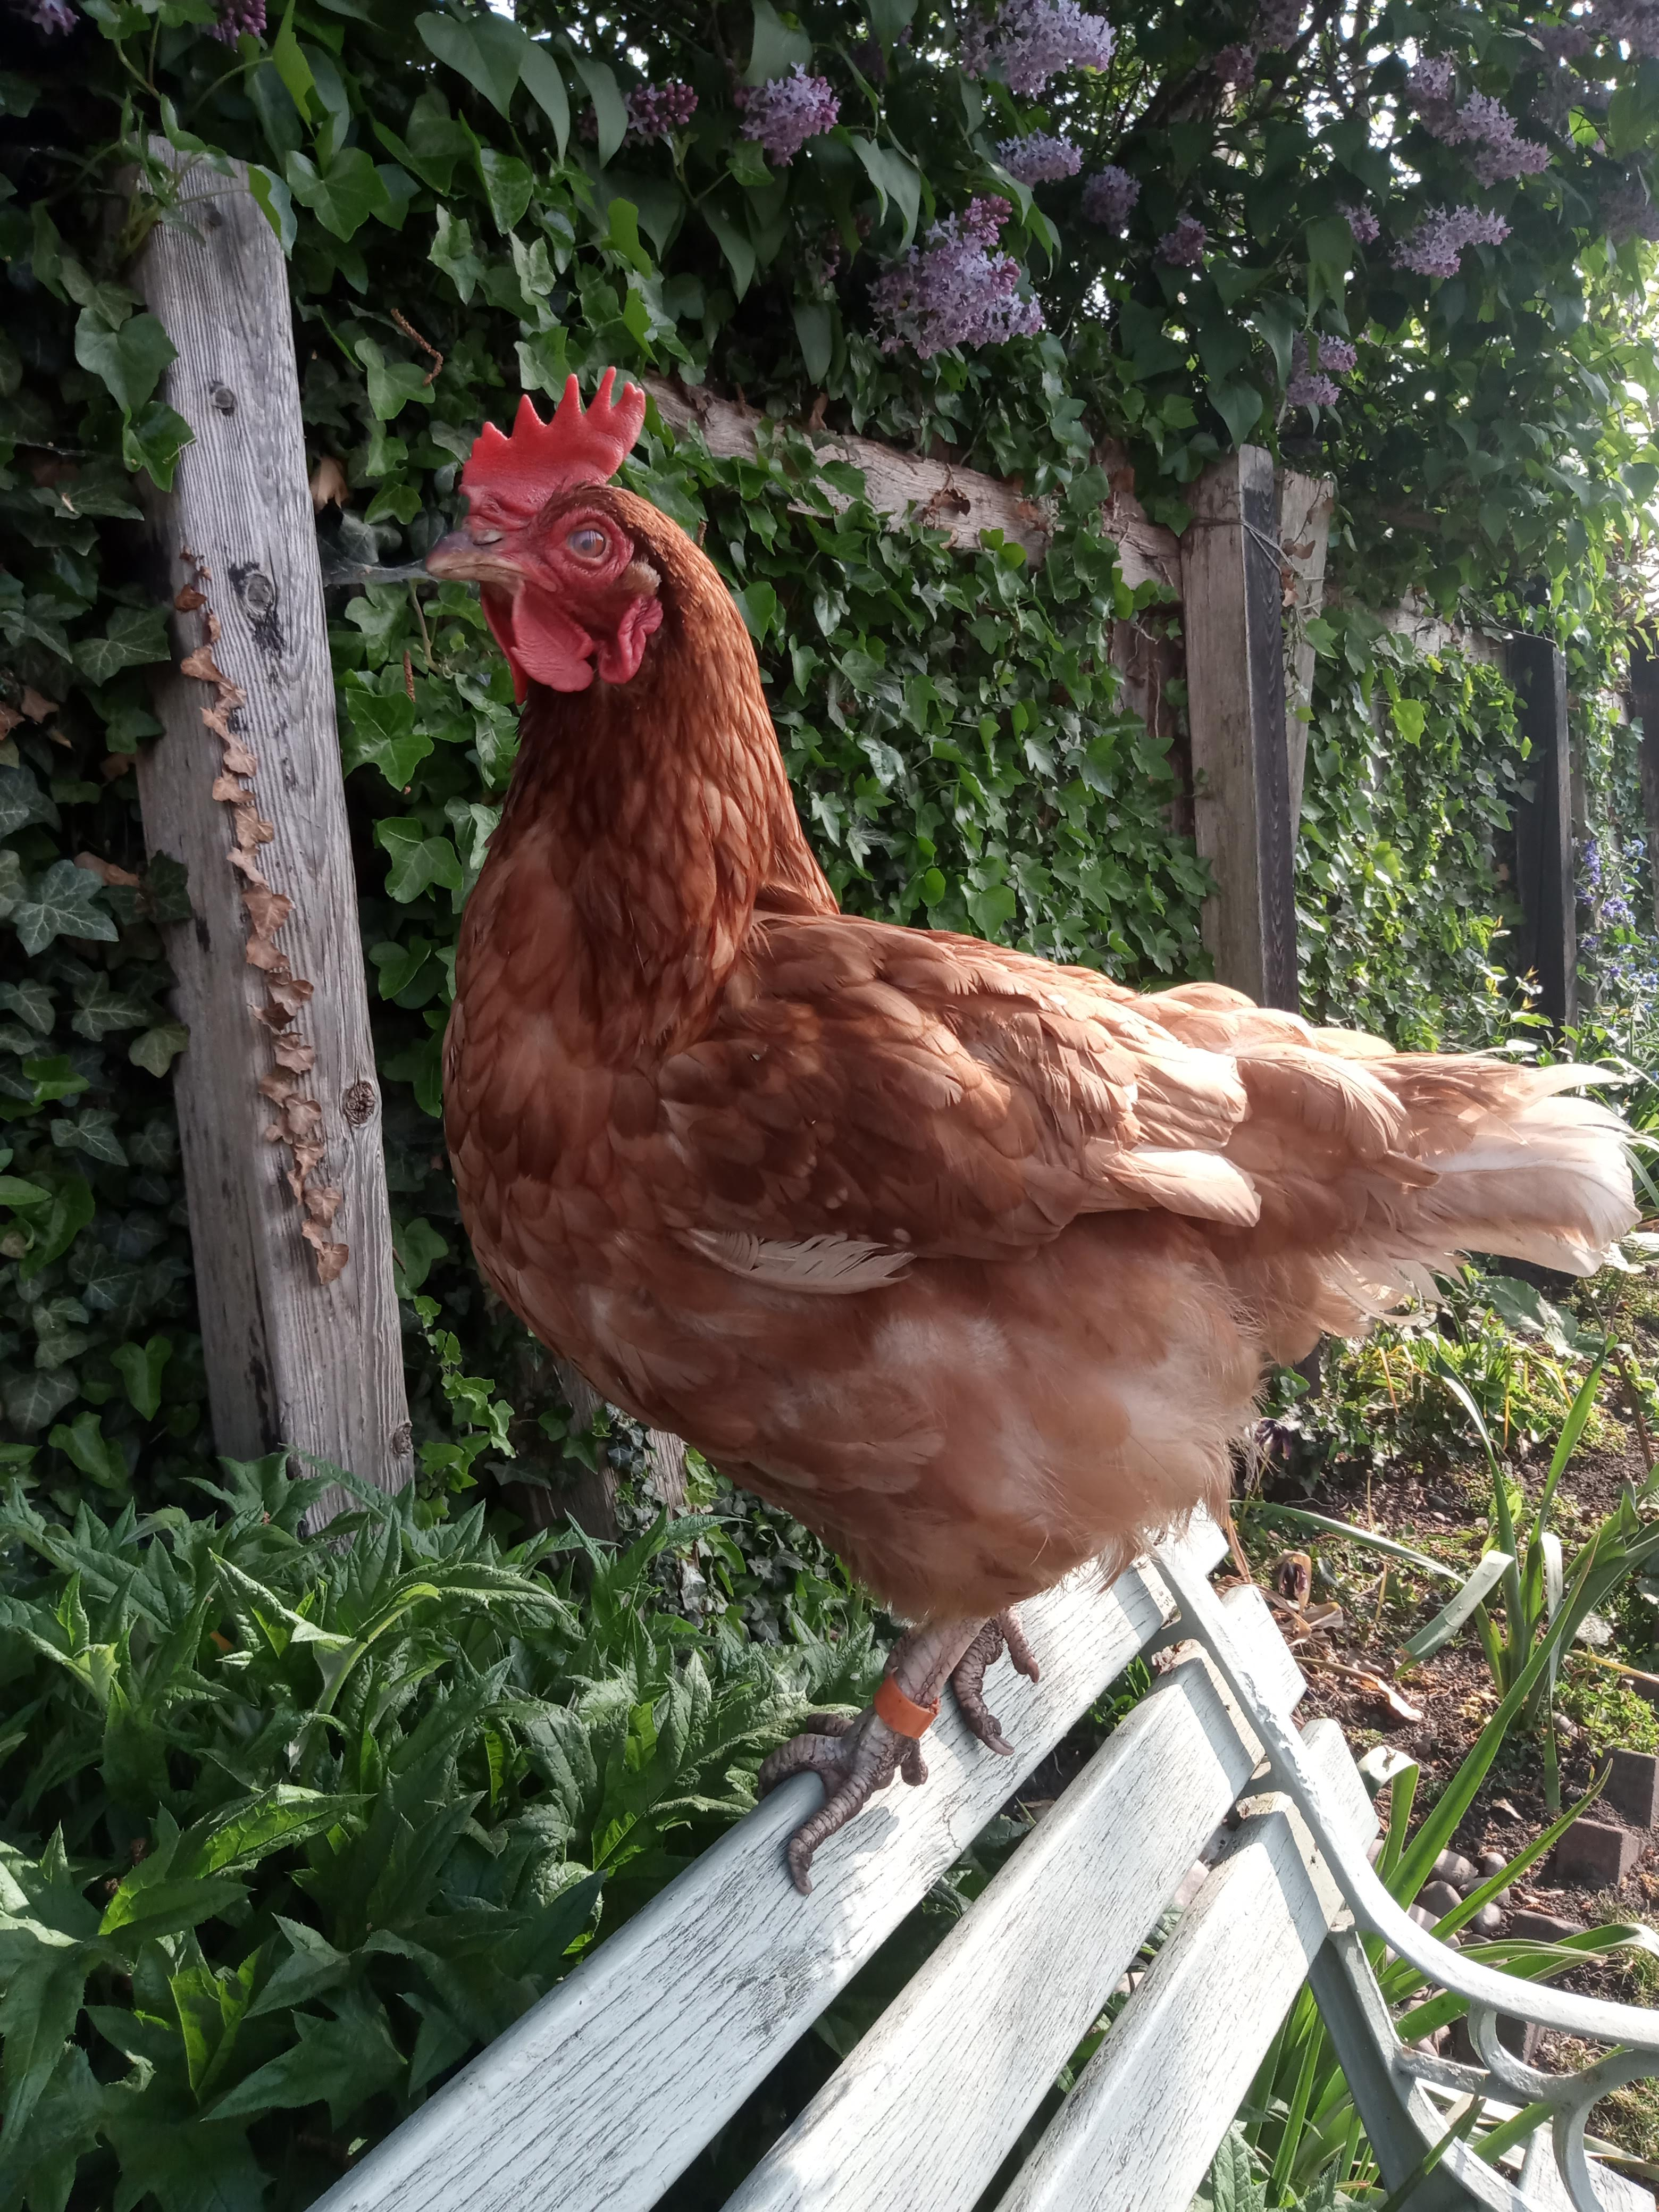 A chicken who is missing some of her feathers is perched on the back of a bench.